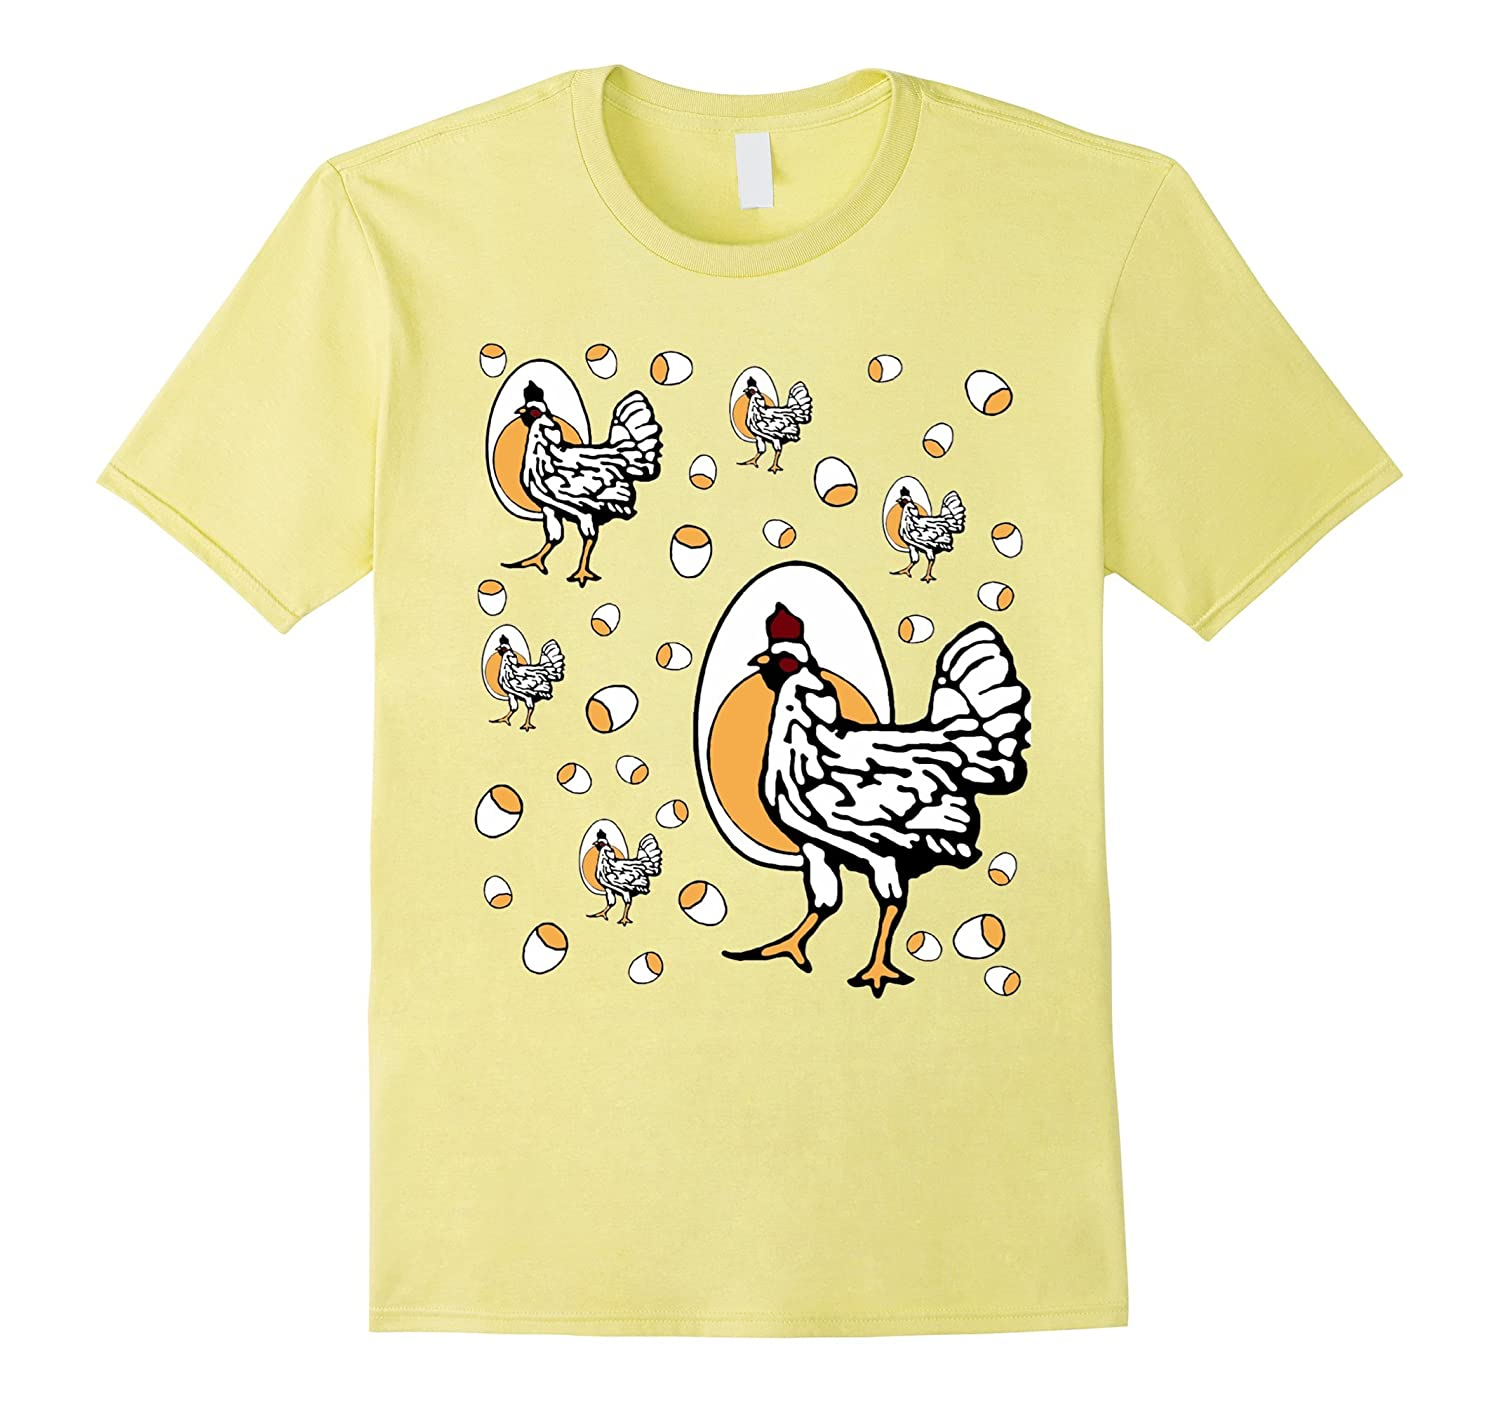 Retro Roseanne Chickens Men/'s White Tees Shirt Clothing